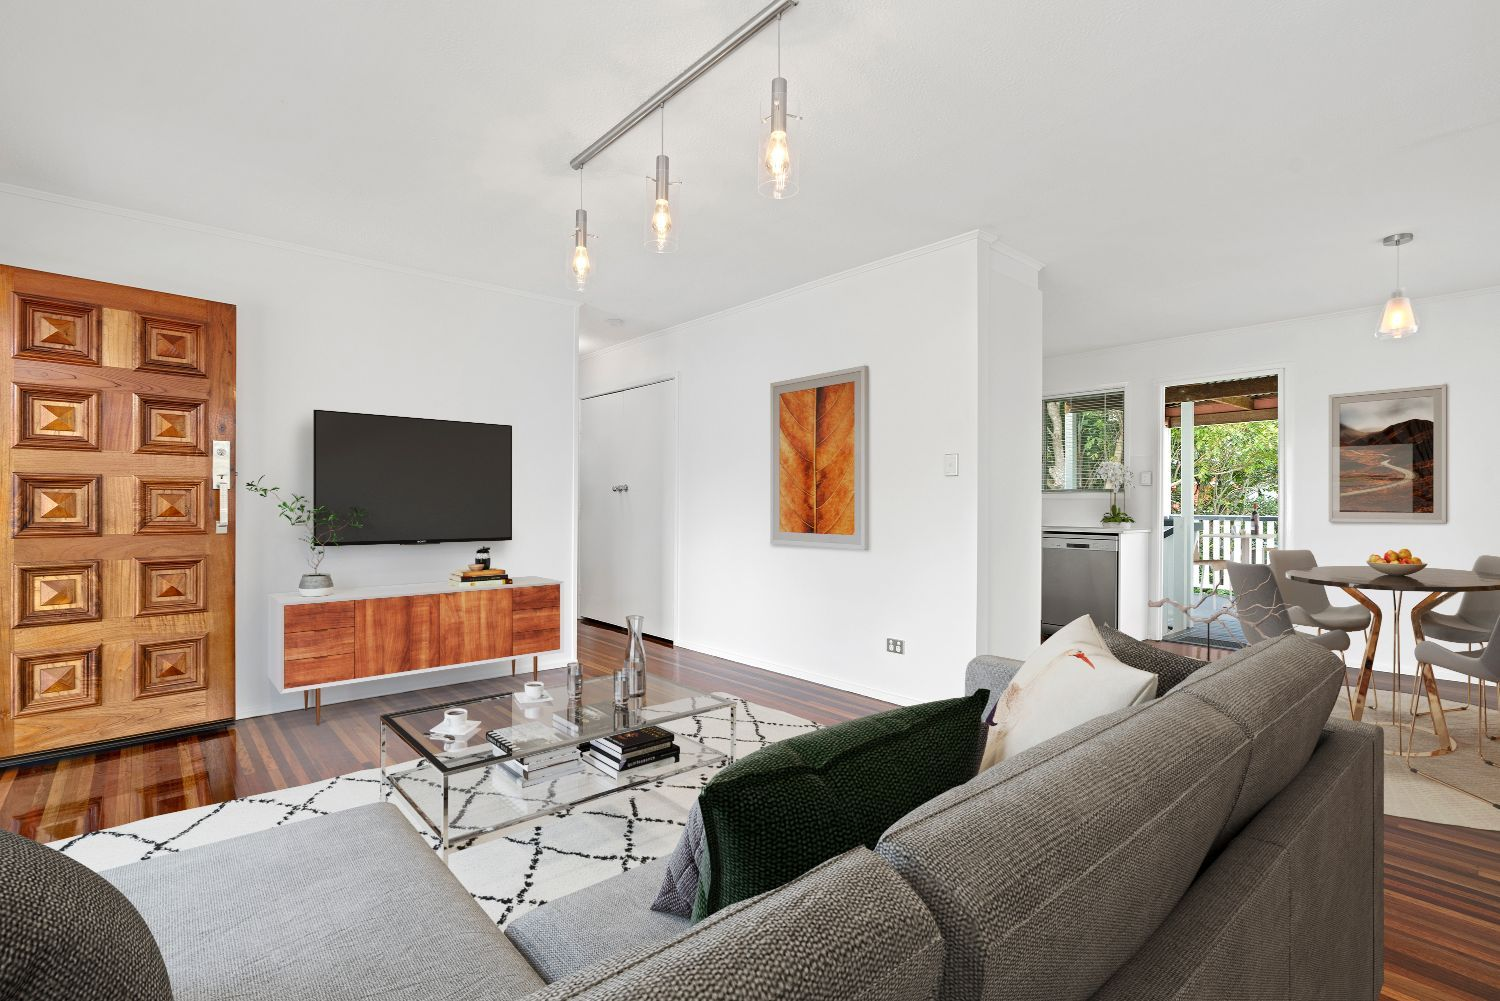 Light-filled and renovated home